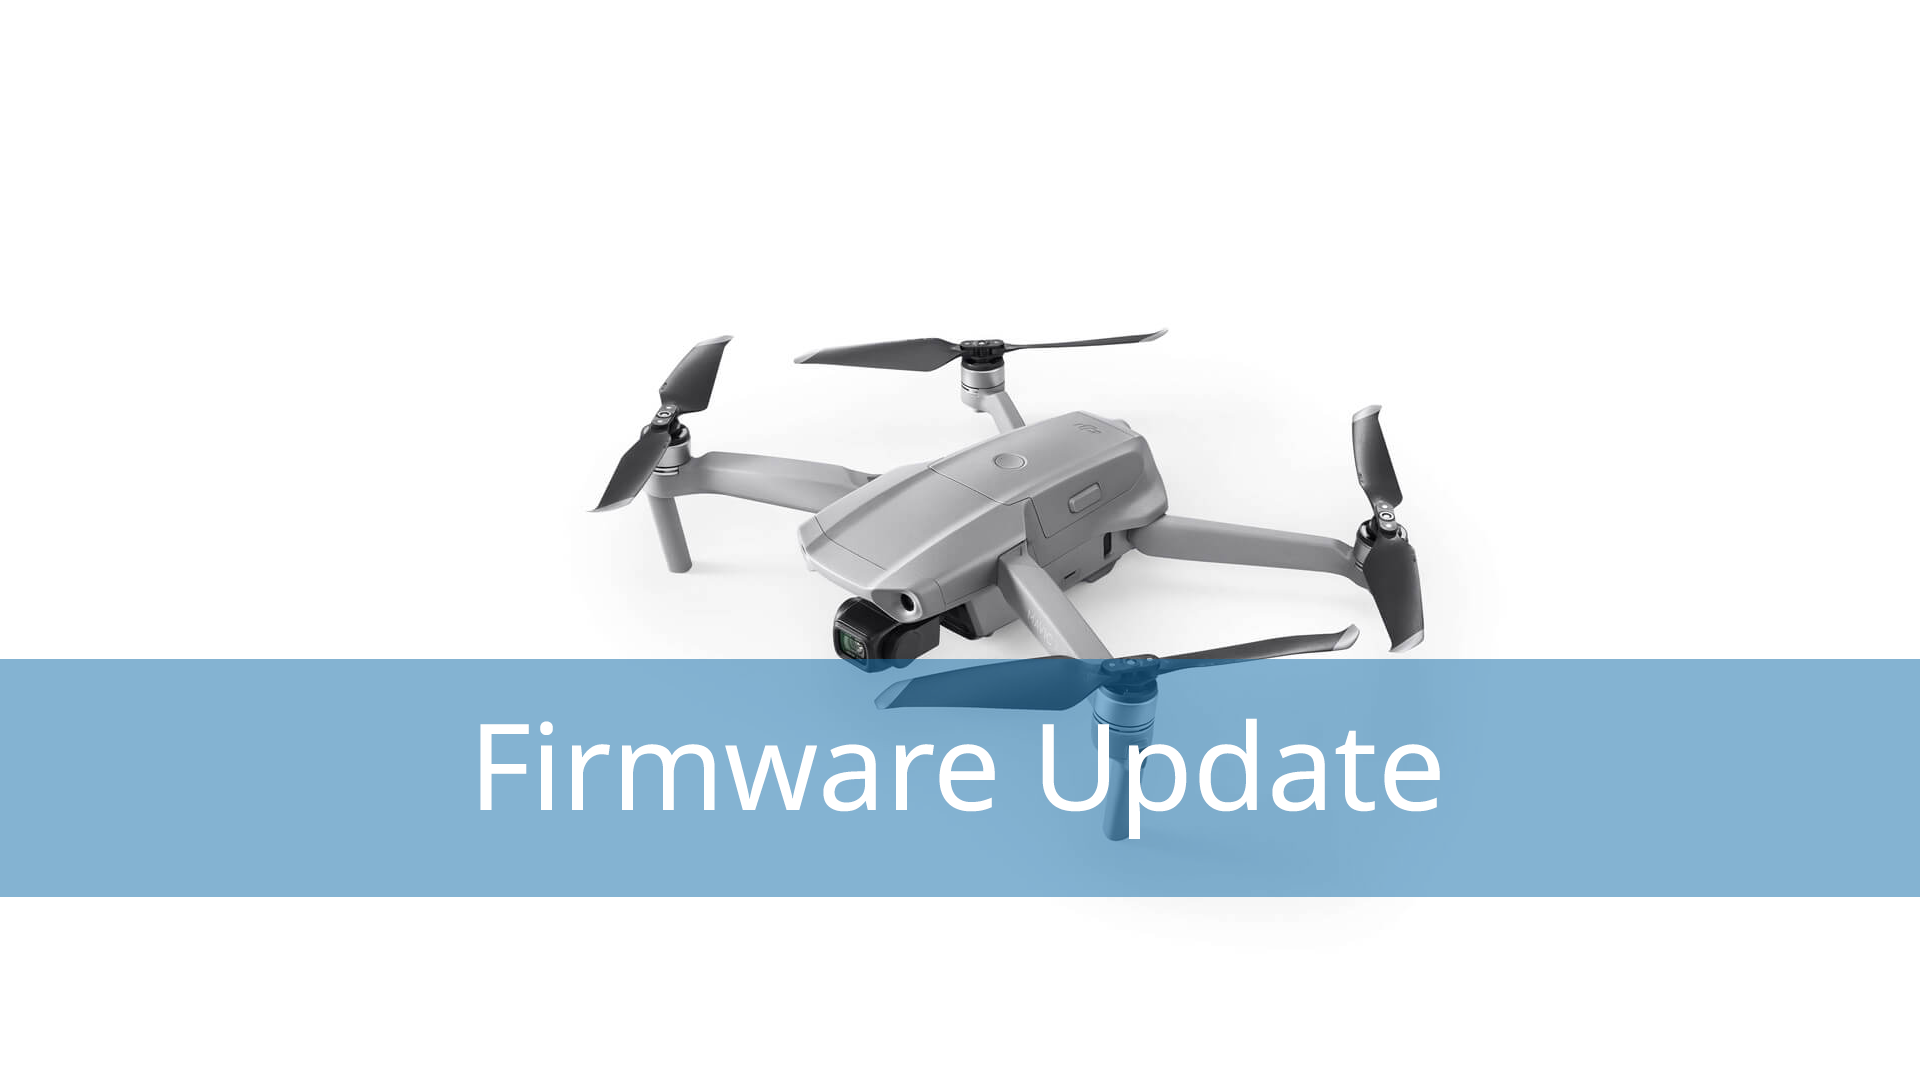 Mavic Air 2 Firmware Update